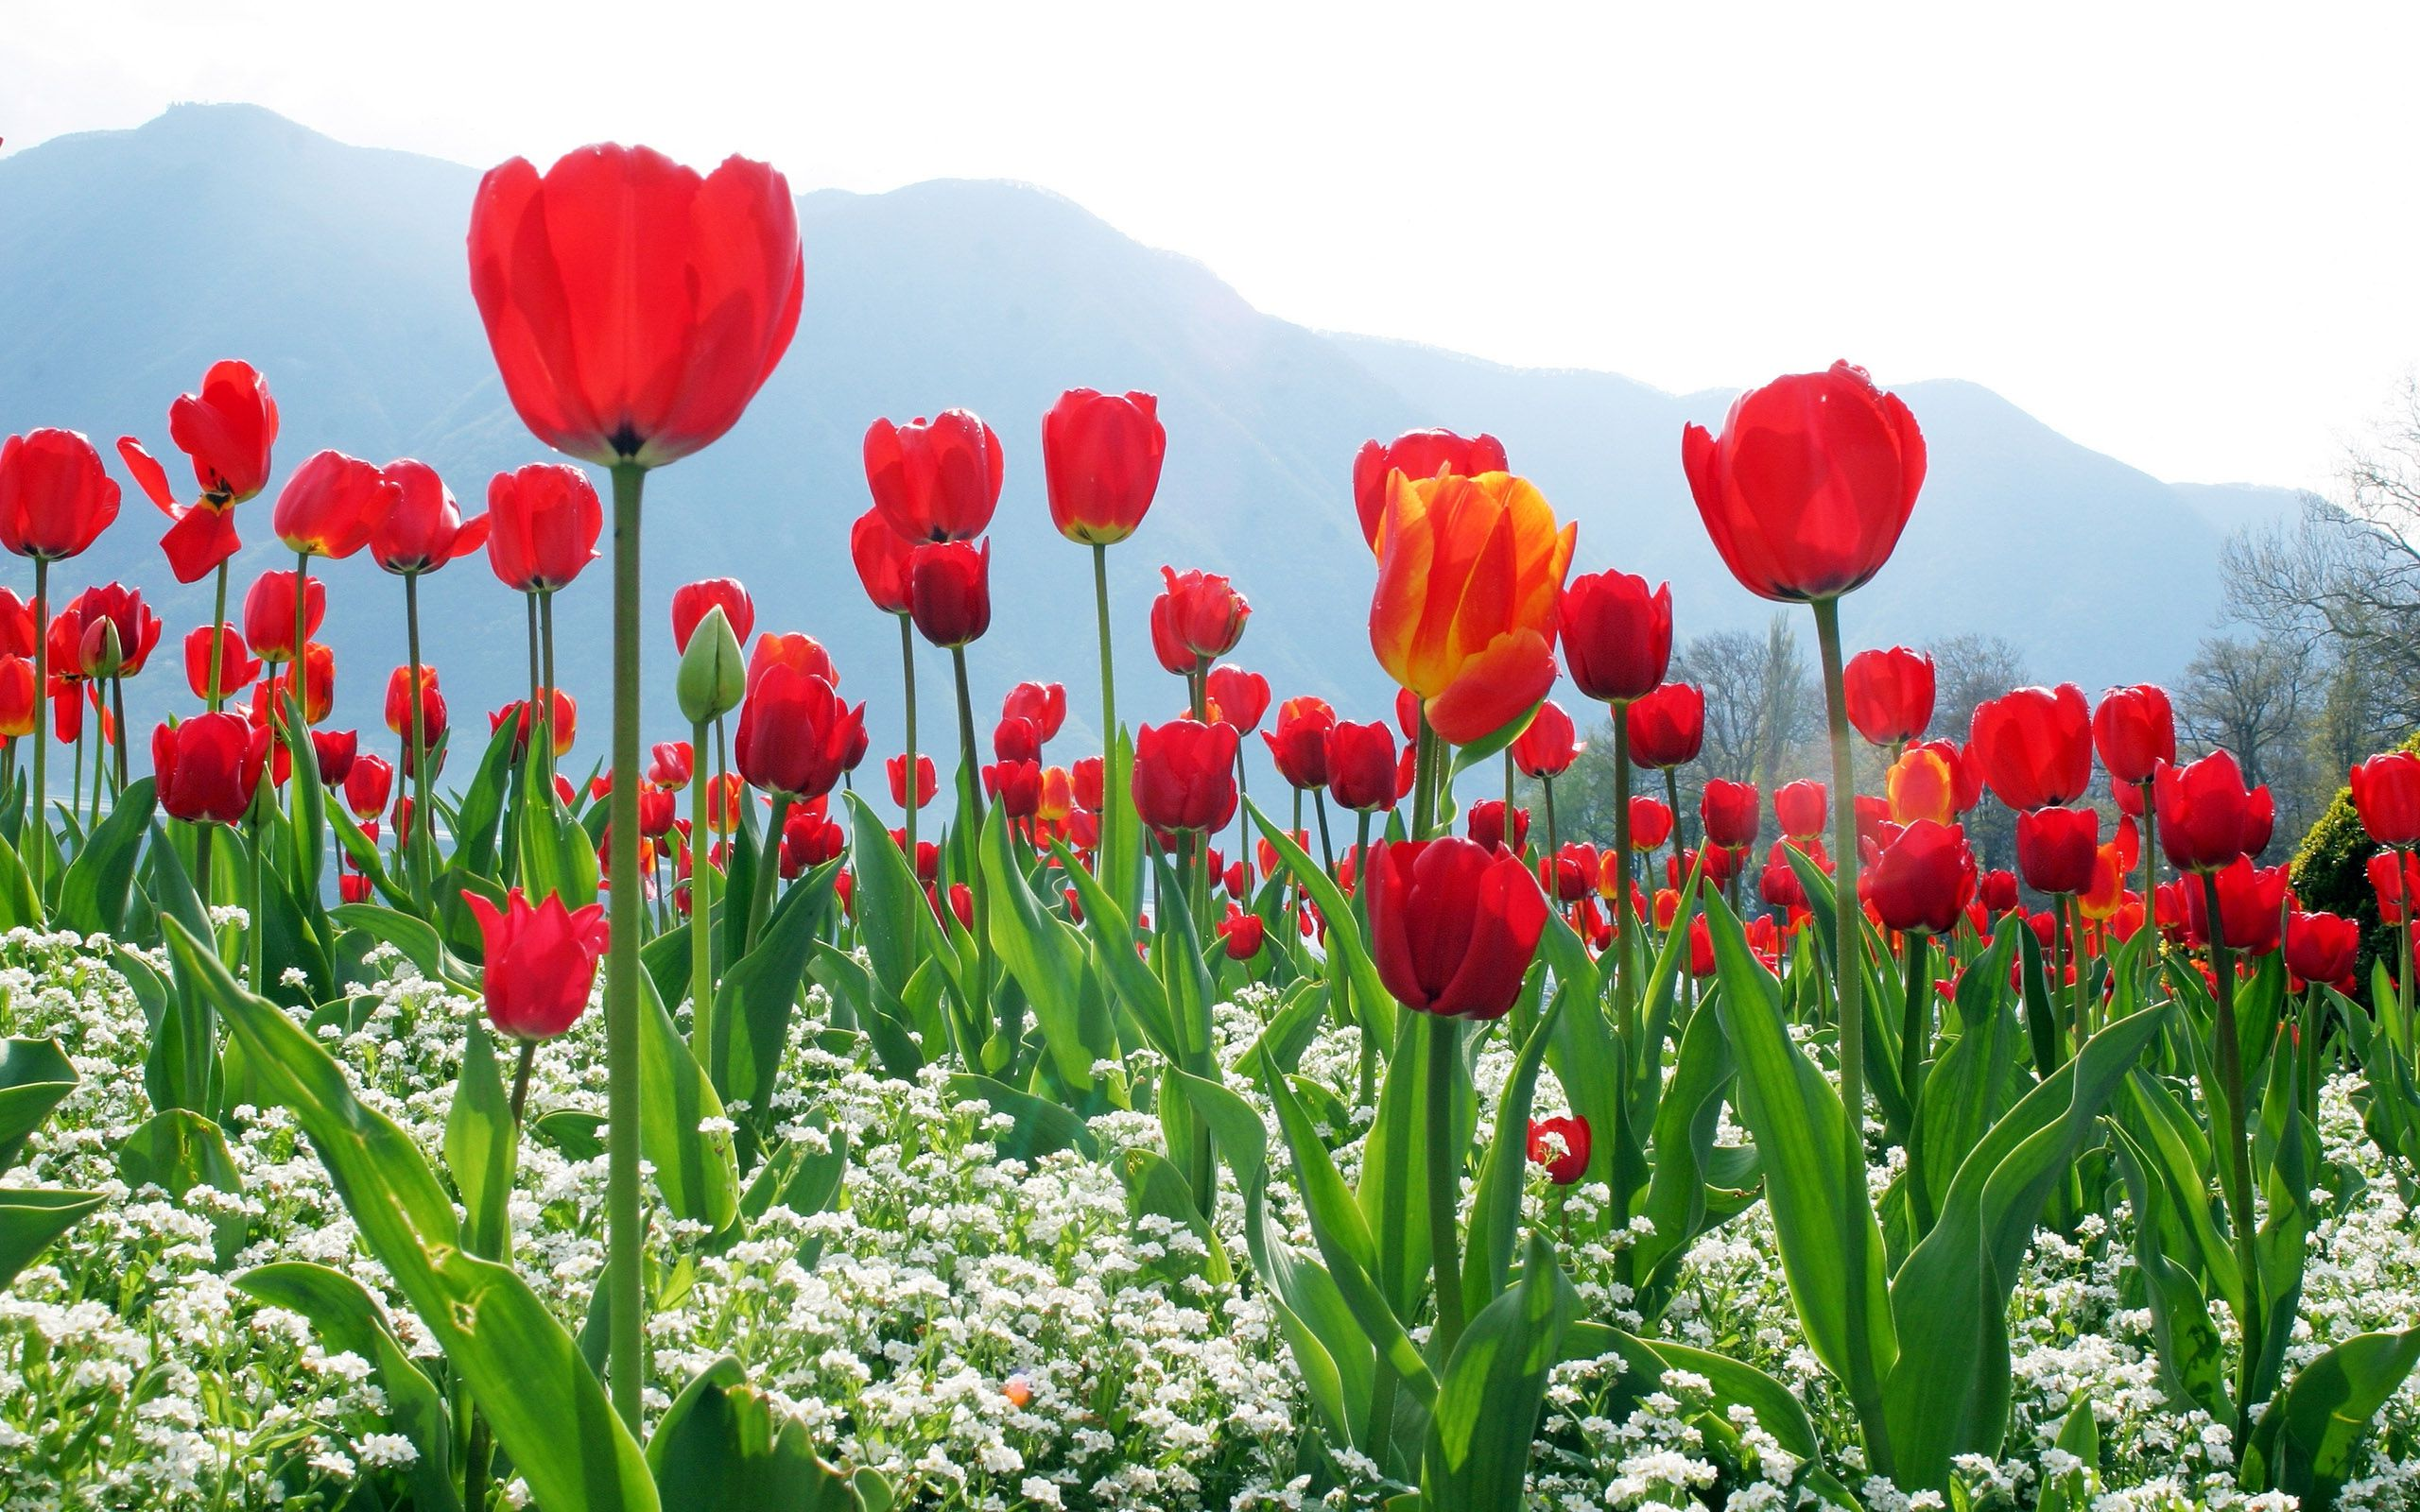 Tulips flower wallpapers   PixelsTalk Net Red Tulip Flowers Field Wallpaper